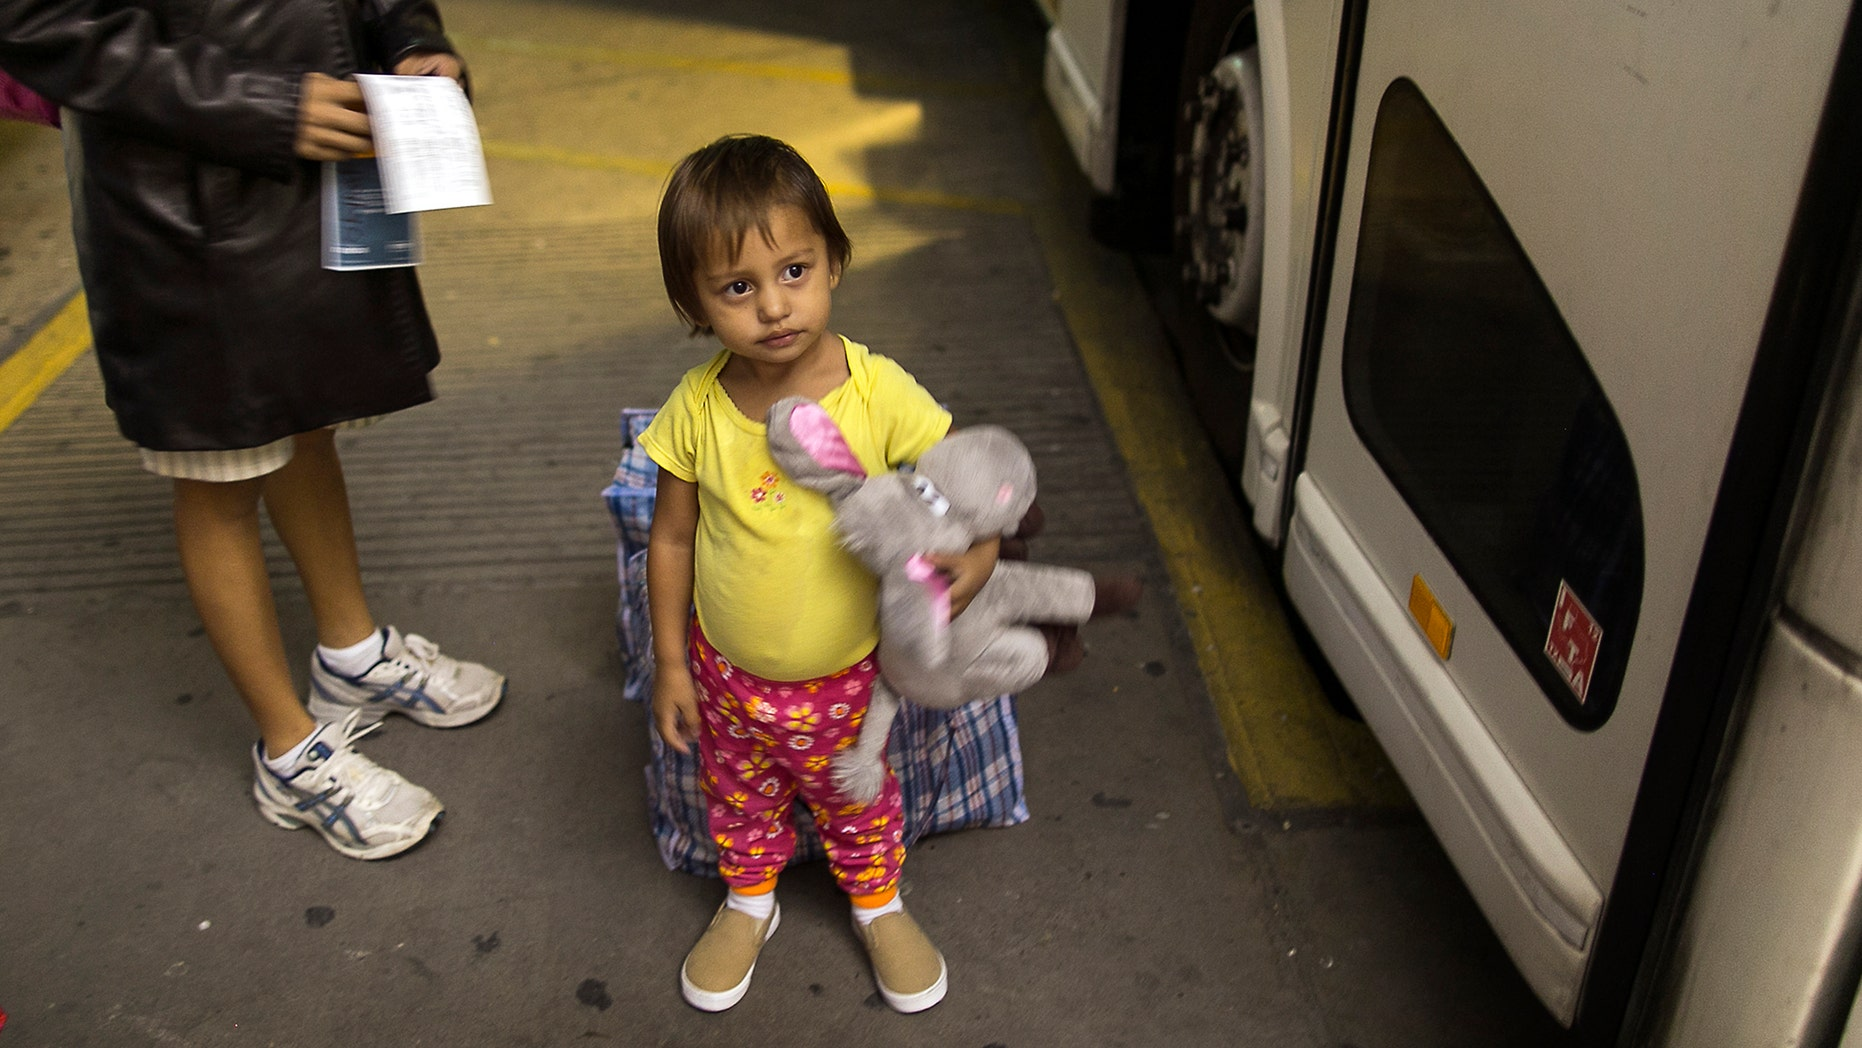 Two-year-old Adriana Ortez and her mother wait to board a bus leaving the city in McAllen, Texas.